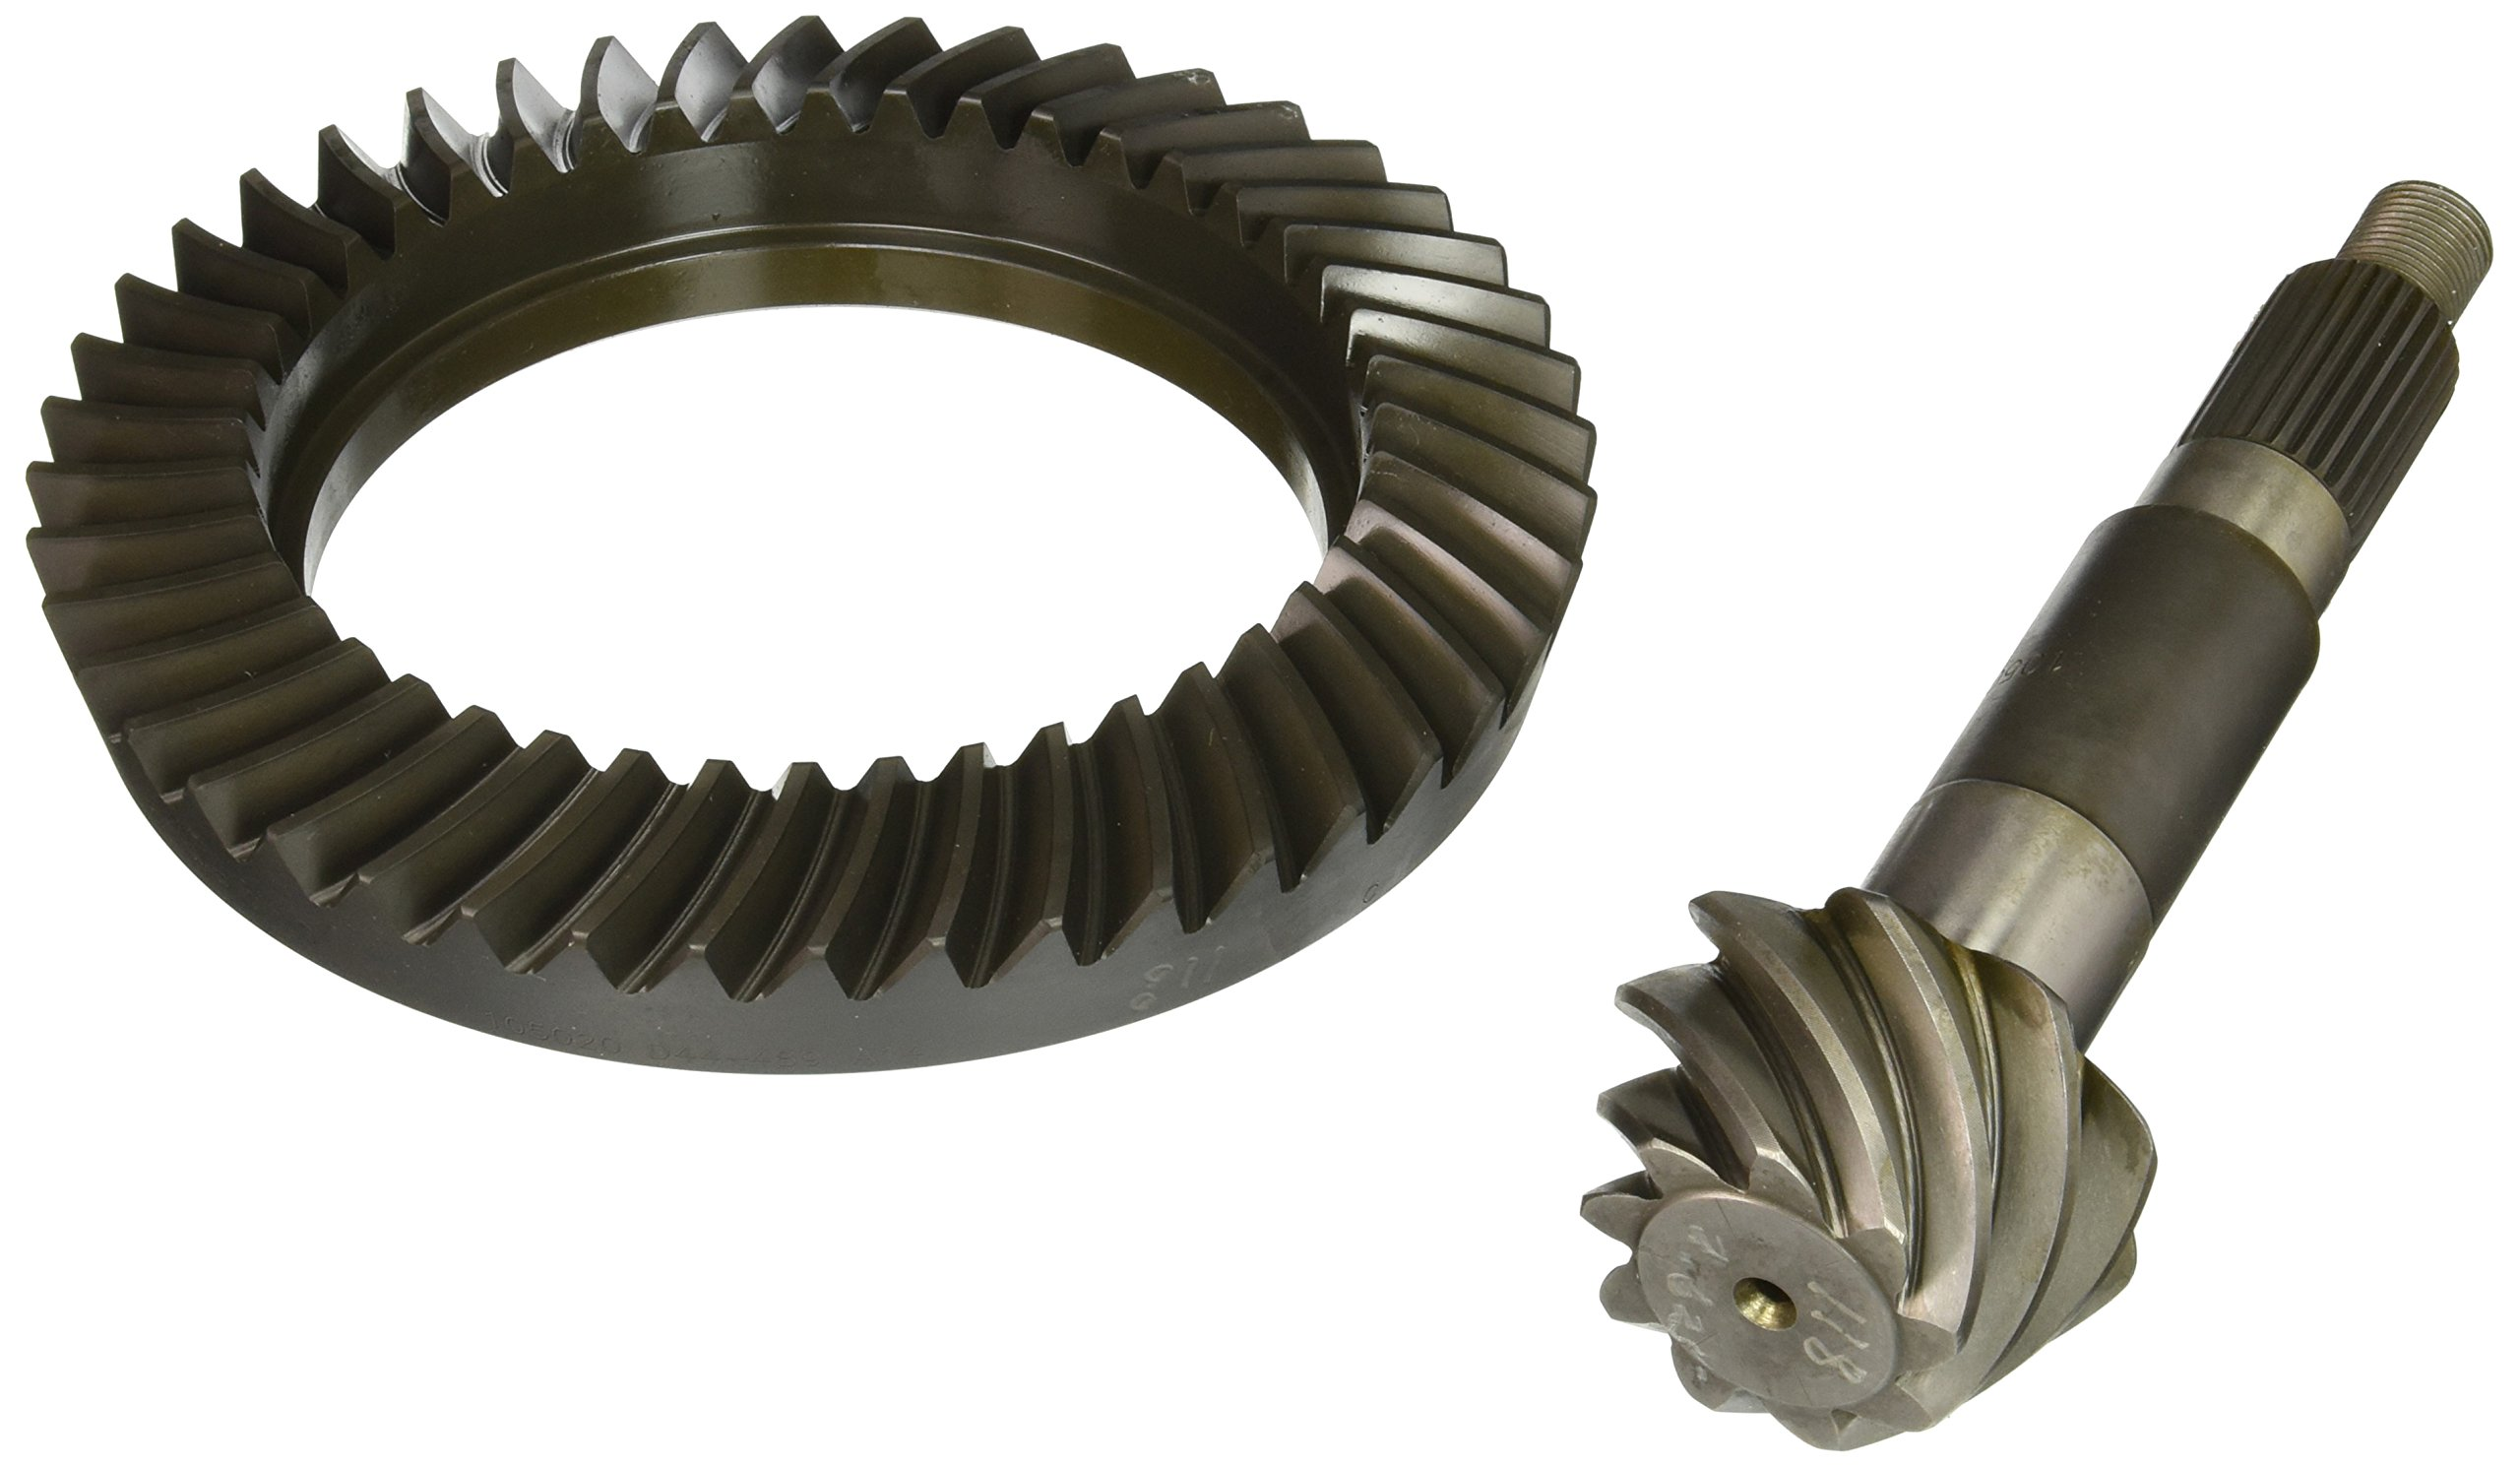 Motive Gear D44-489 Ring and Pinion (DANA 44 Style, 4.89 Ratio, Standard) by Motive Gear (Image #1)